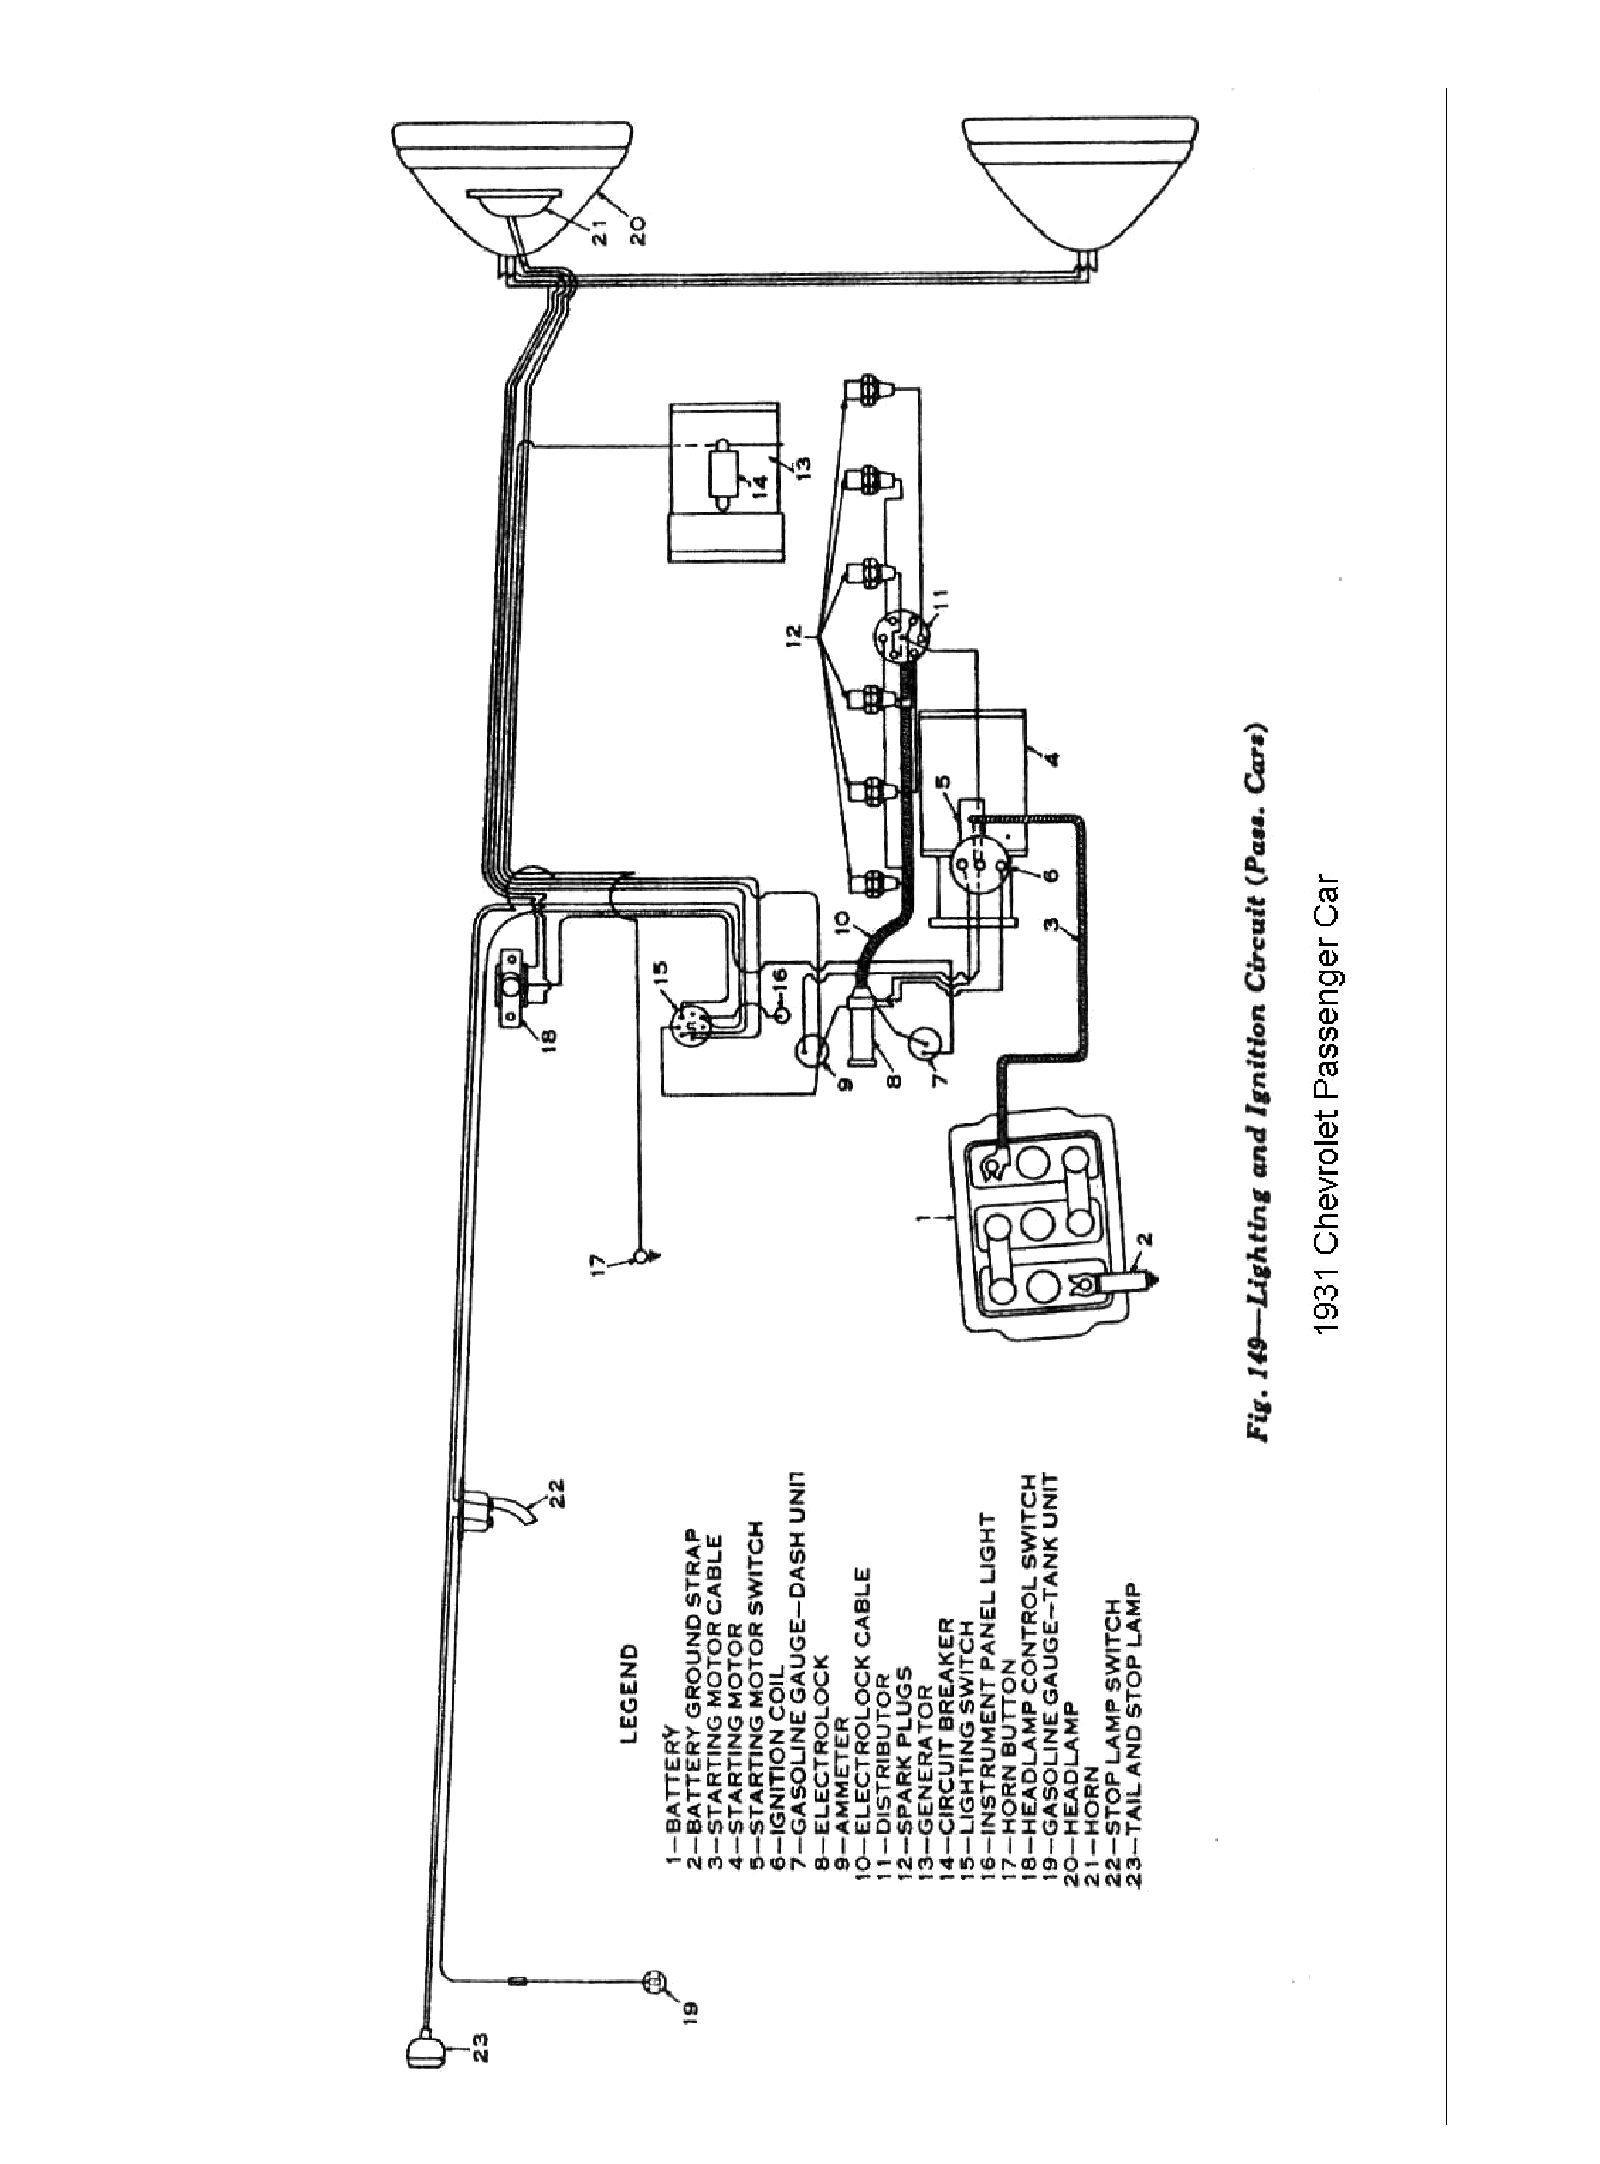 437976 besides 1931 Model A Wiring Diagram likewise Street Rod Frame And Suspension 3d Studio 3ds together with 1941 Ford Pickup Truck Wiring Diagram together with Rear Sway Bar 1935 1940 Ford. on 1932 chevrolet brake parts